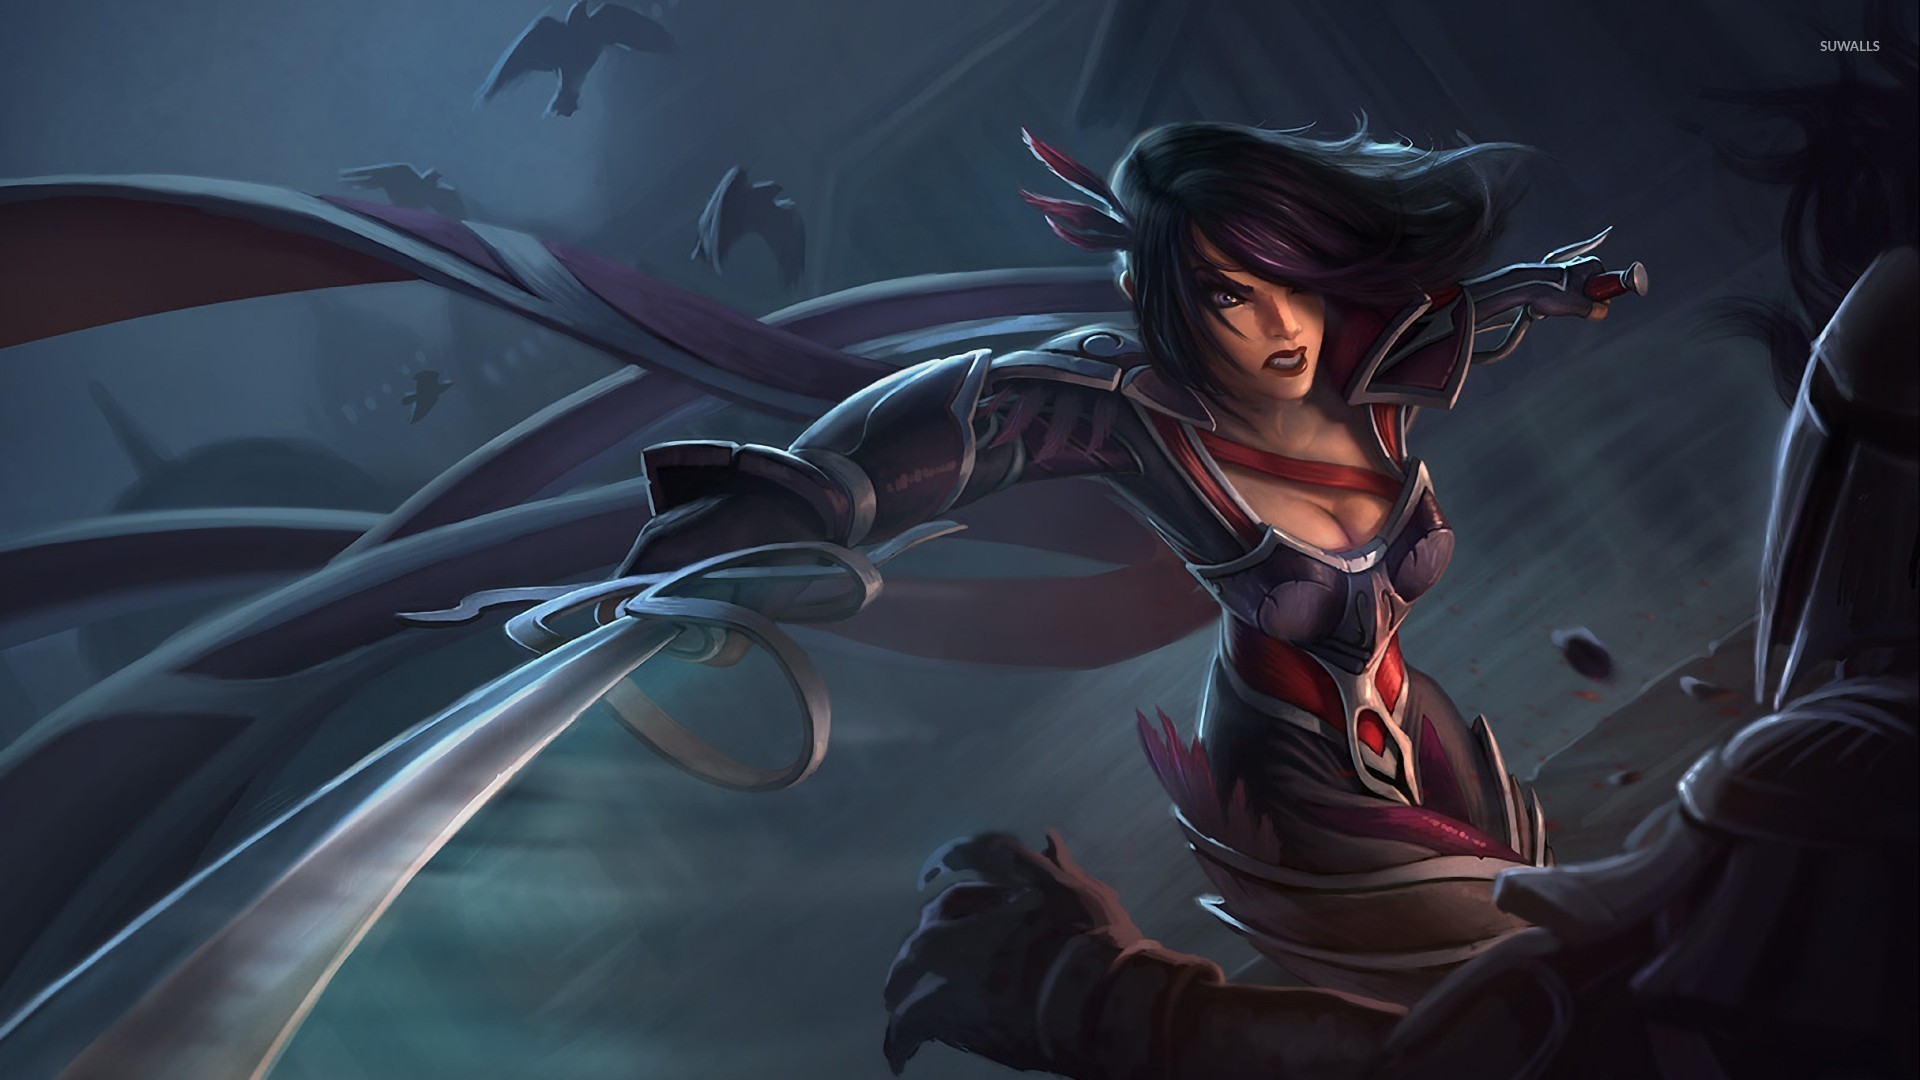 Nightraven Fiora League Of Legends Wallpaper Game Wallpapers